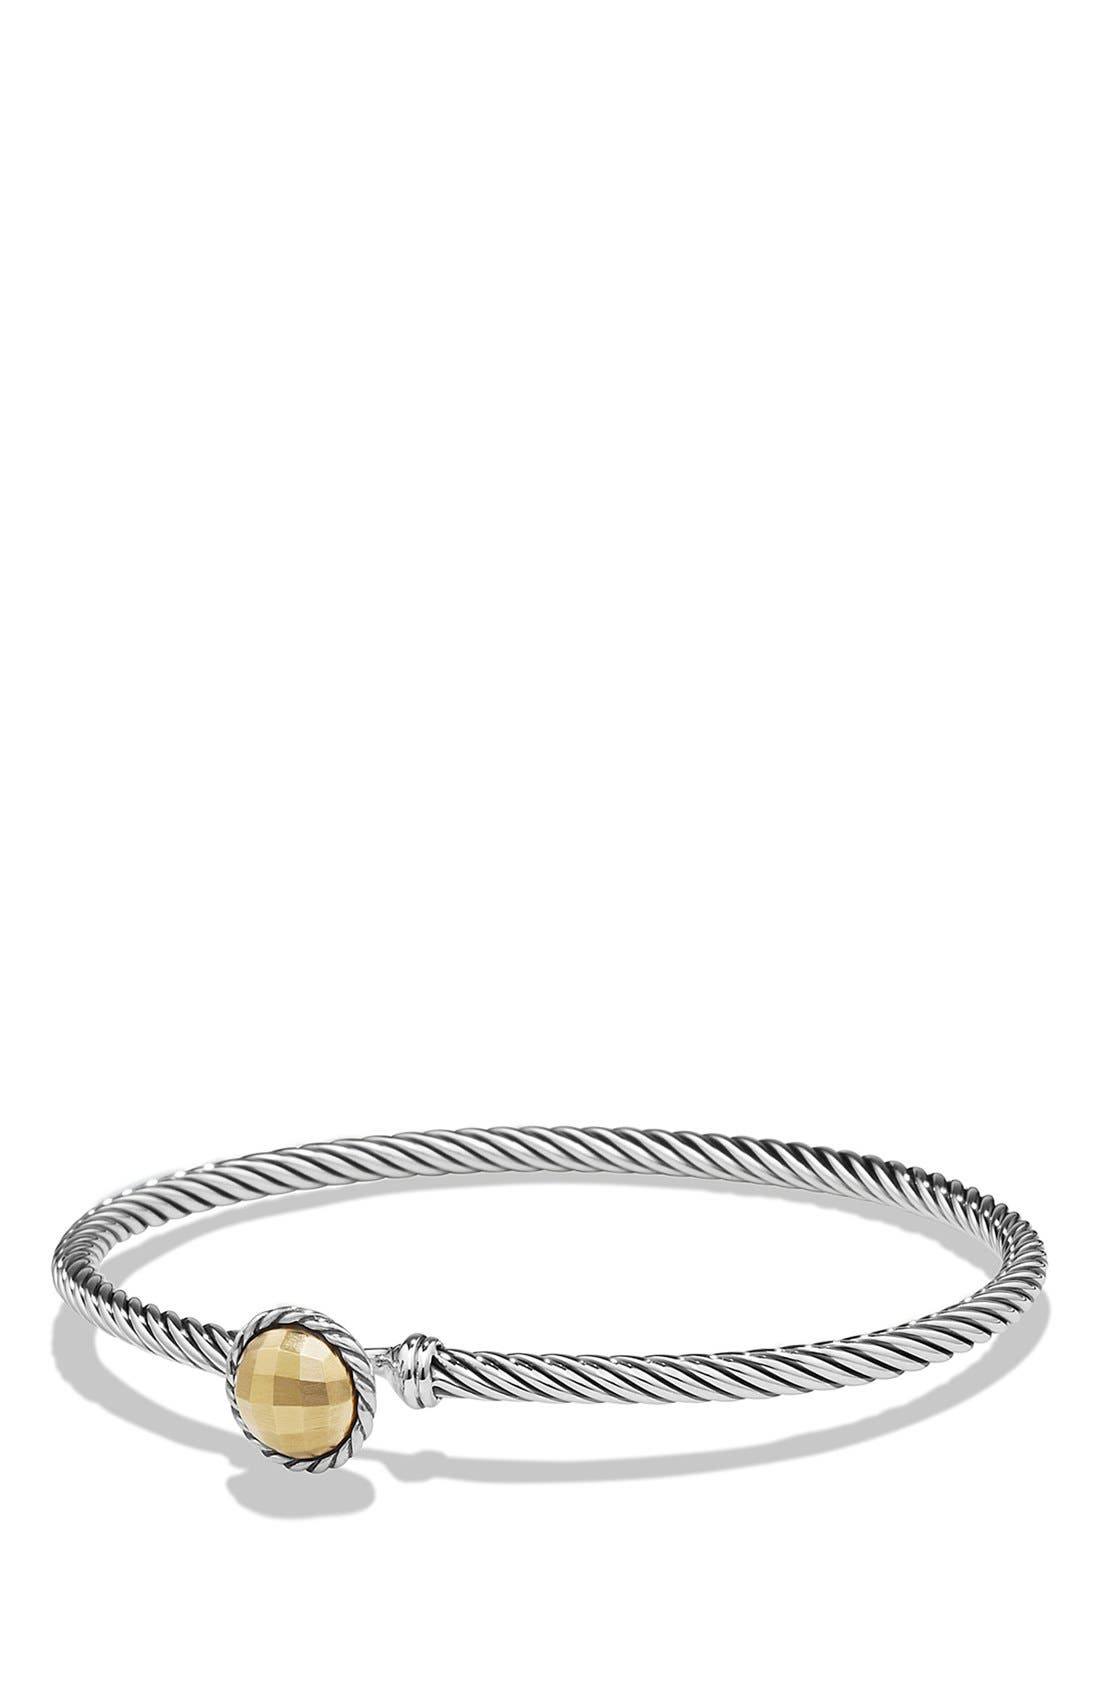 DAVID YURMAN Châtelaine Bracelet with Gold Dome and 18K Gold